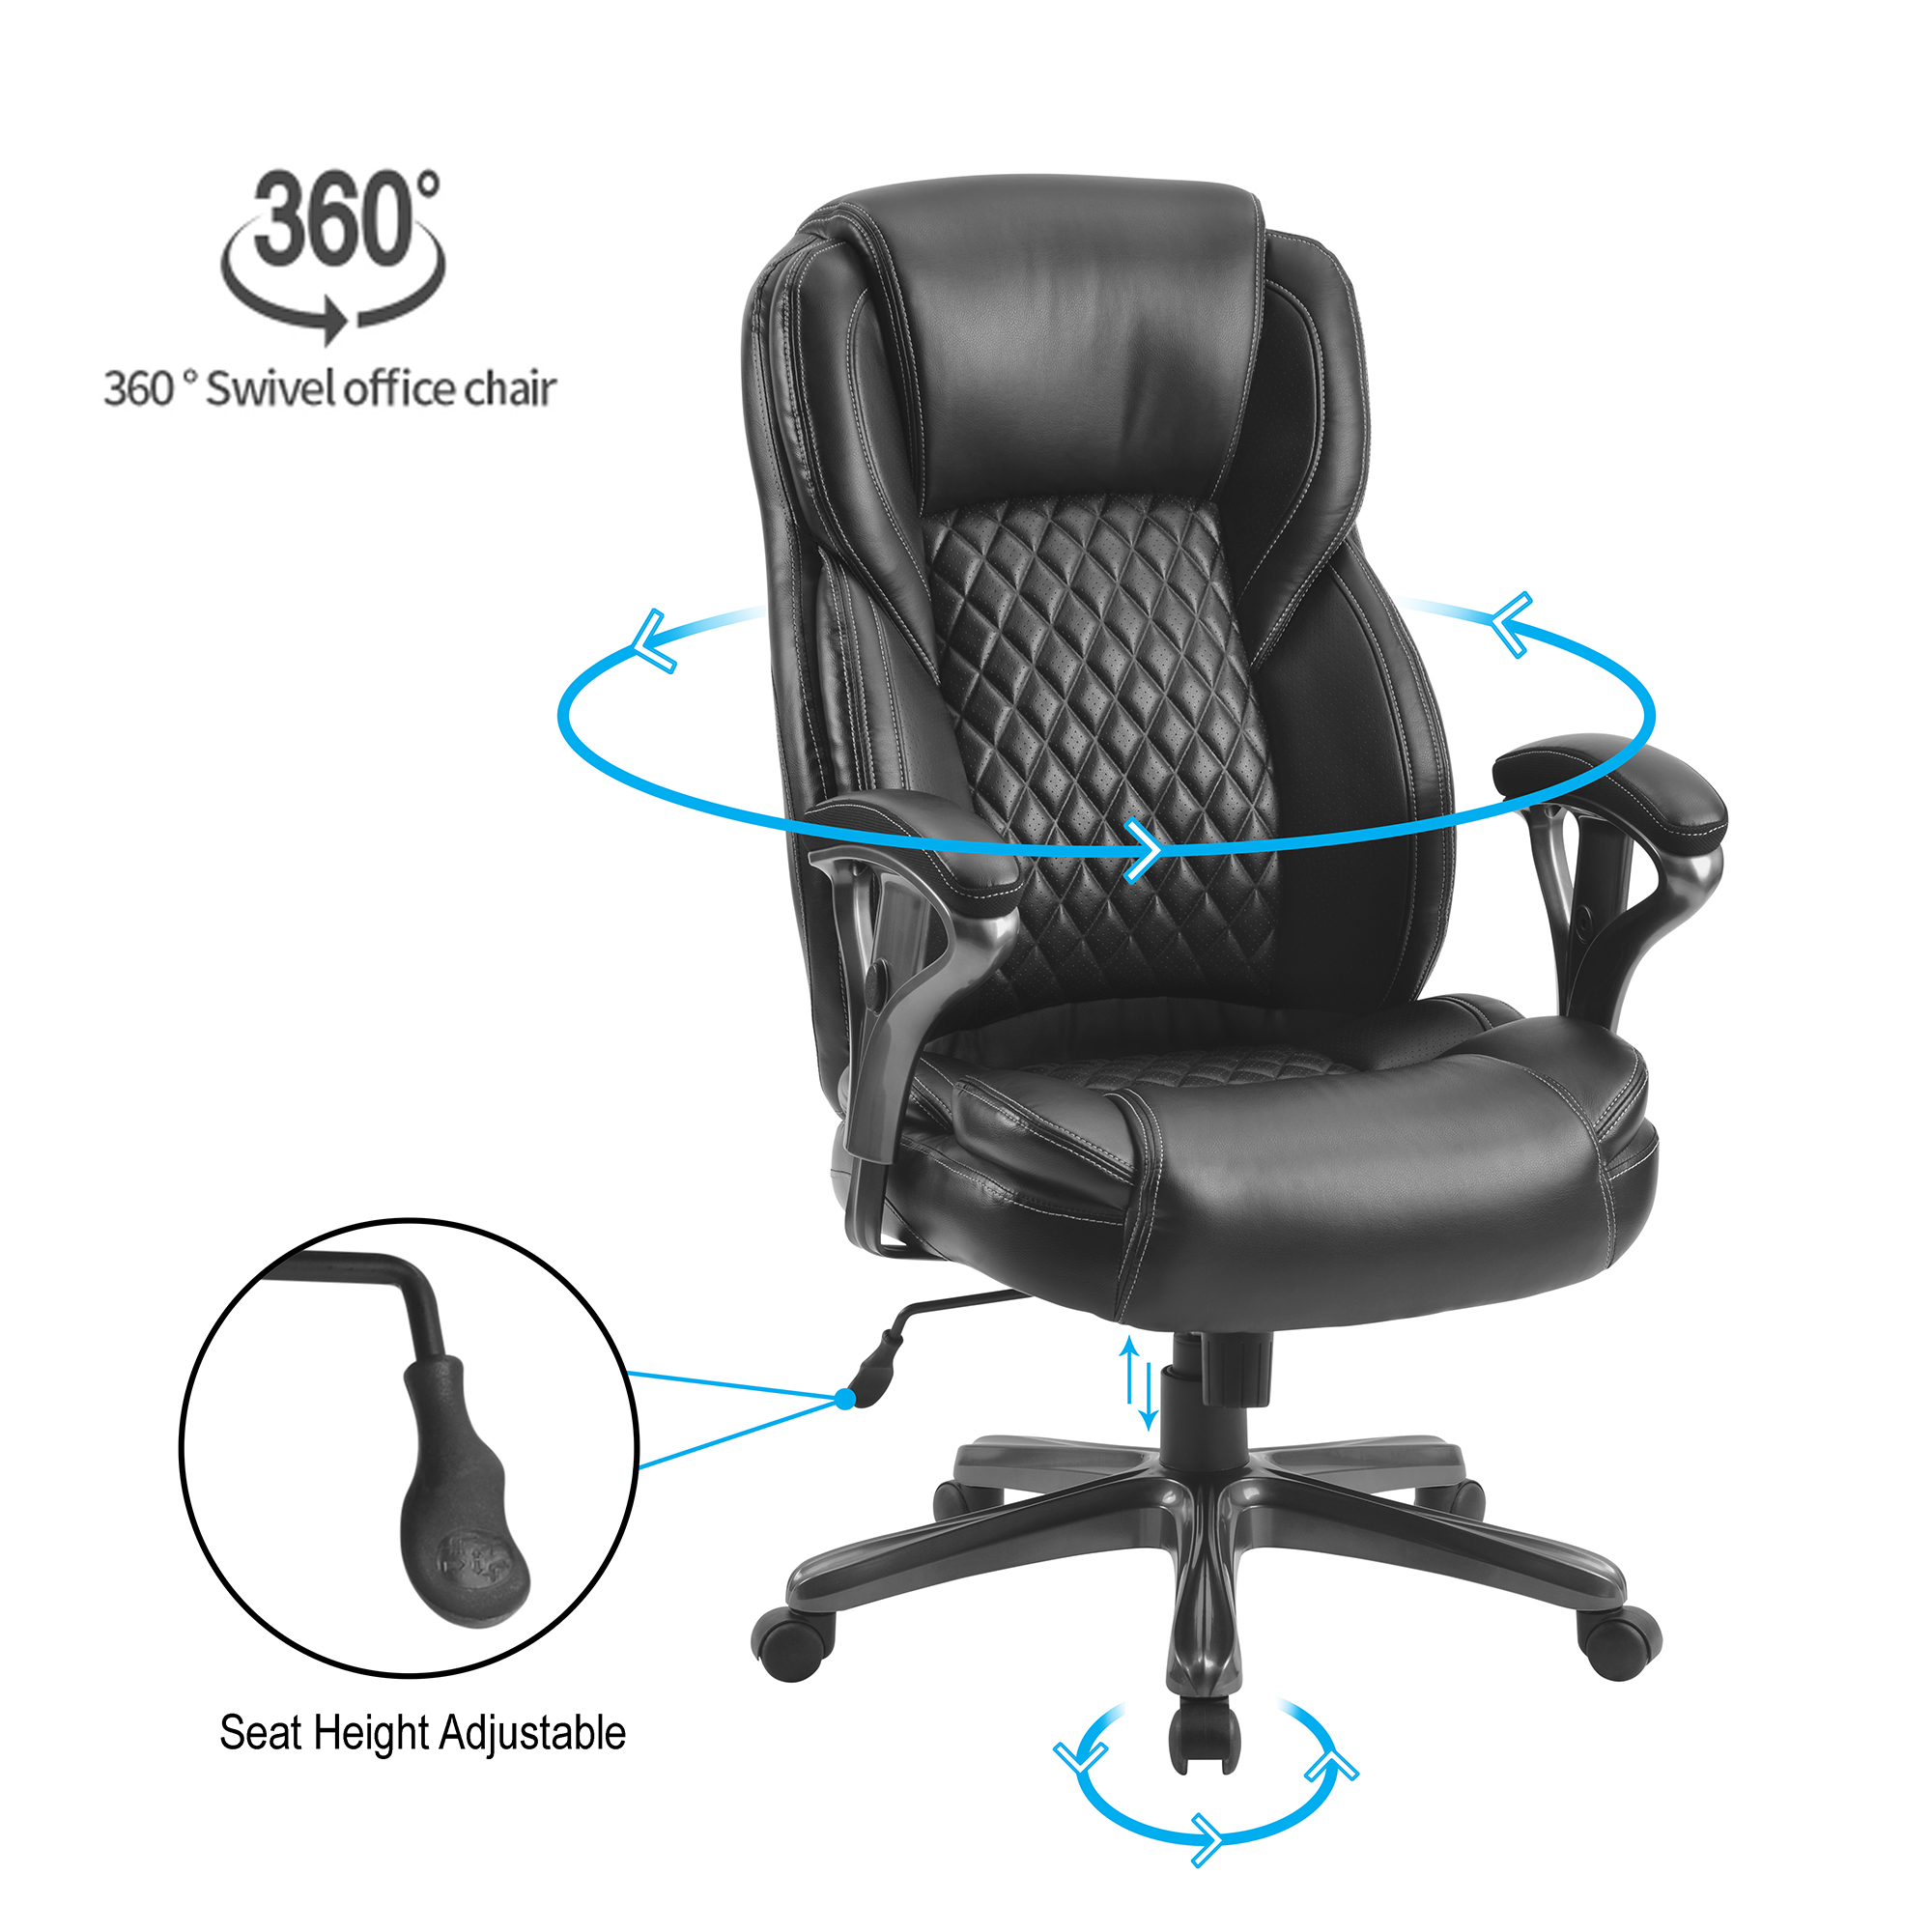 Picture of: Home Office Armrest Chair Leather Swivel Desk Chairs Adjustable Height Ergonomic Office Task Chair Executive Office Chairs With High Back Lumbar Support Computer Gaming Chair Black A787 Walmart Com Walmart Com